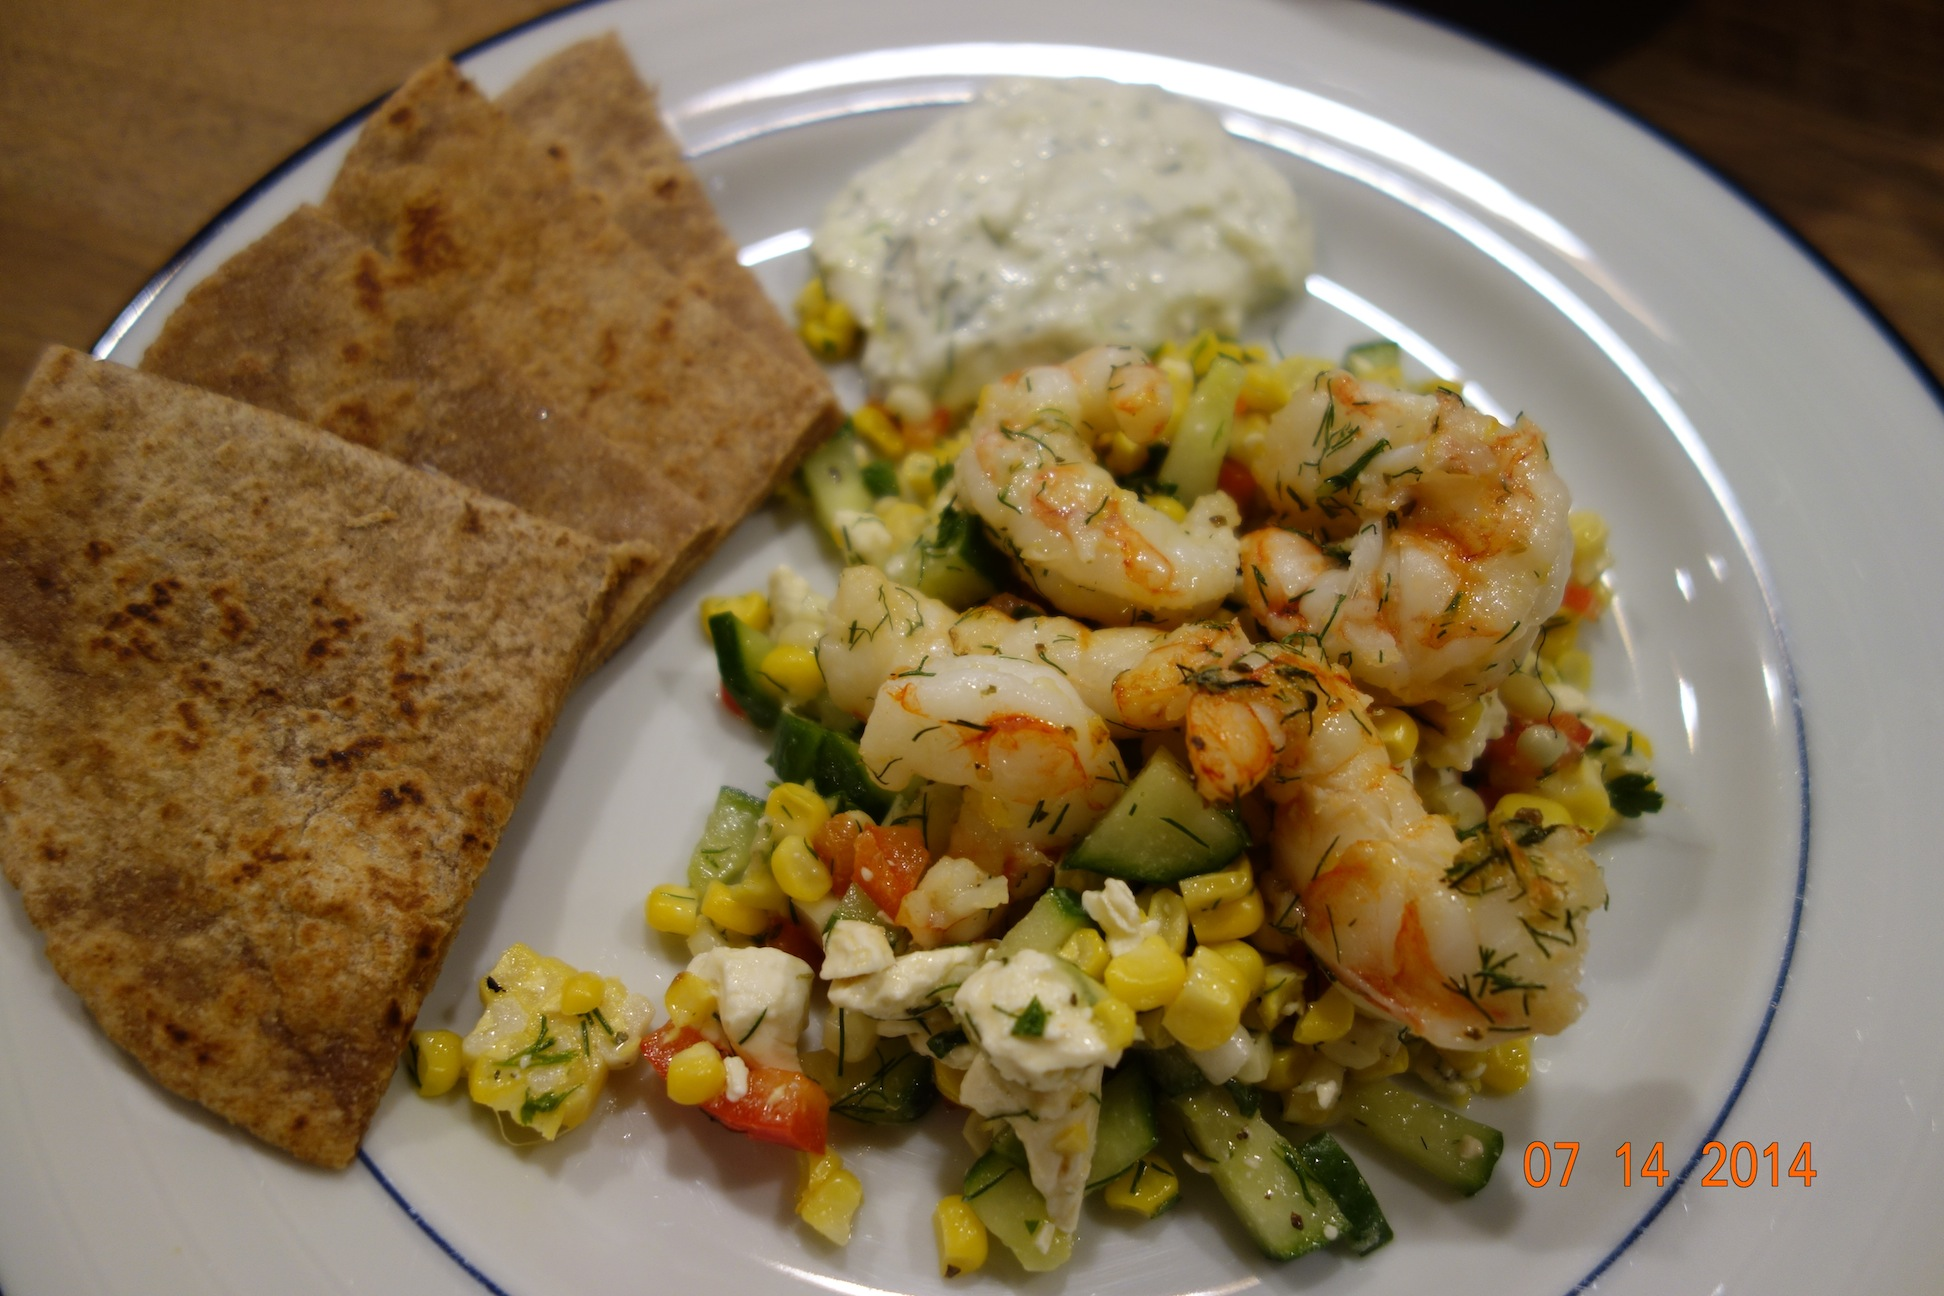 Grilled Shrimp with Dill and Tzatziki Sauce